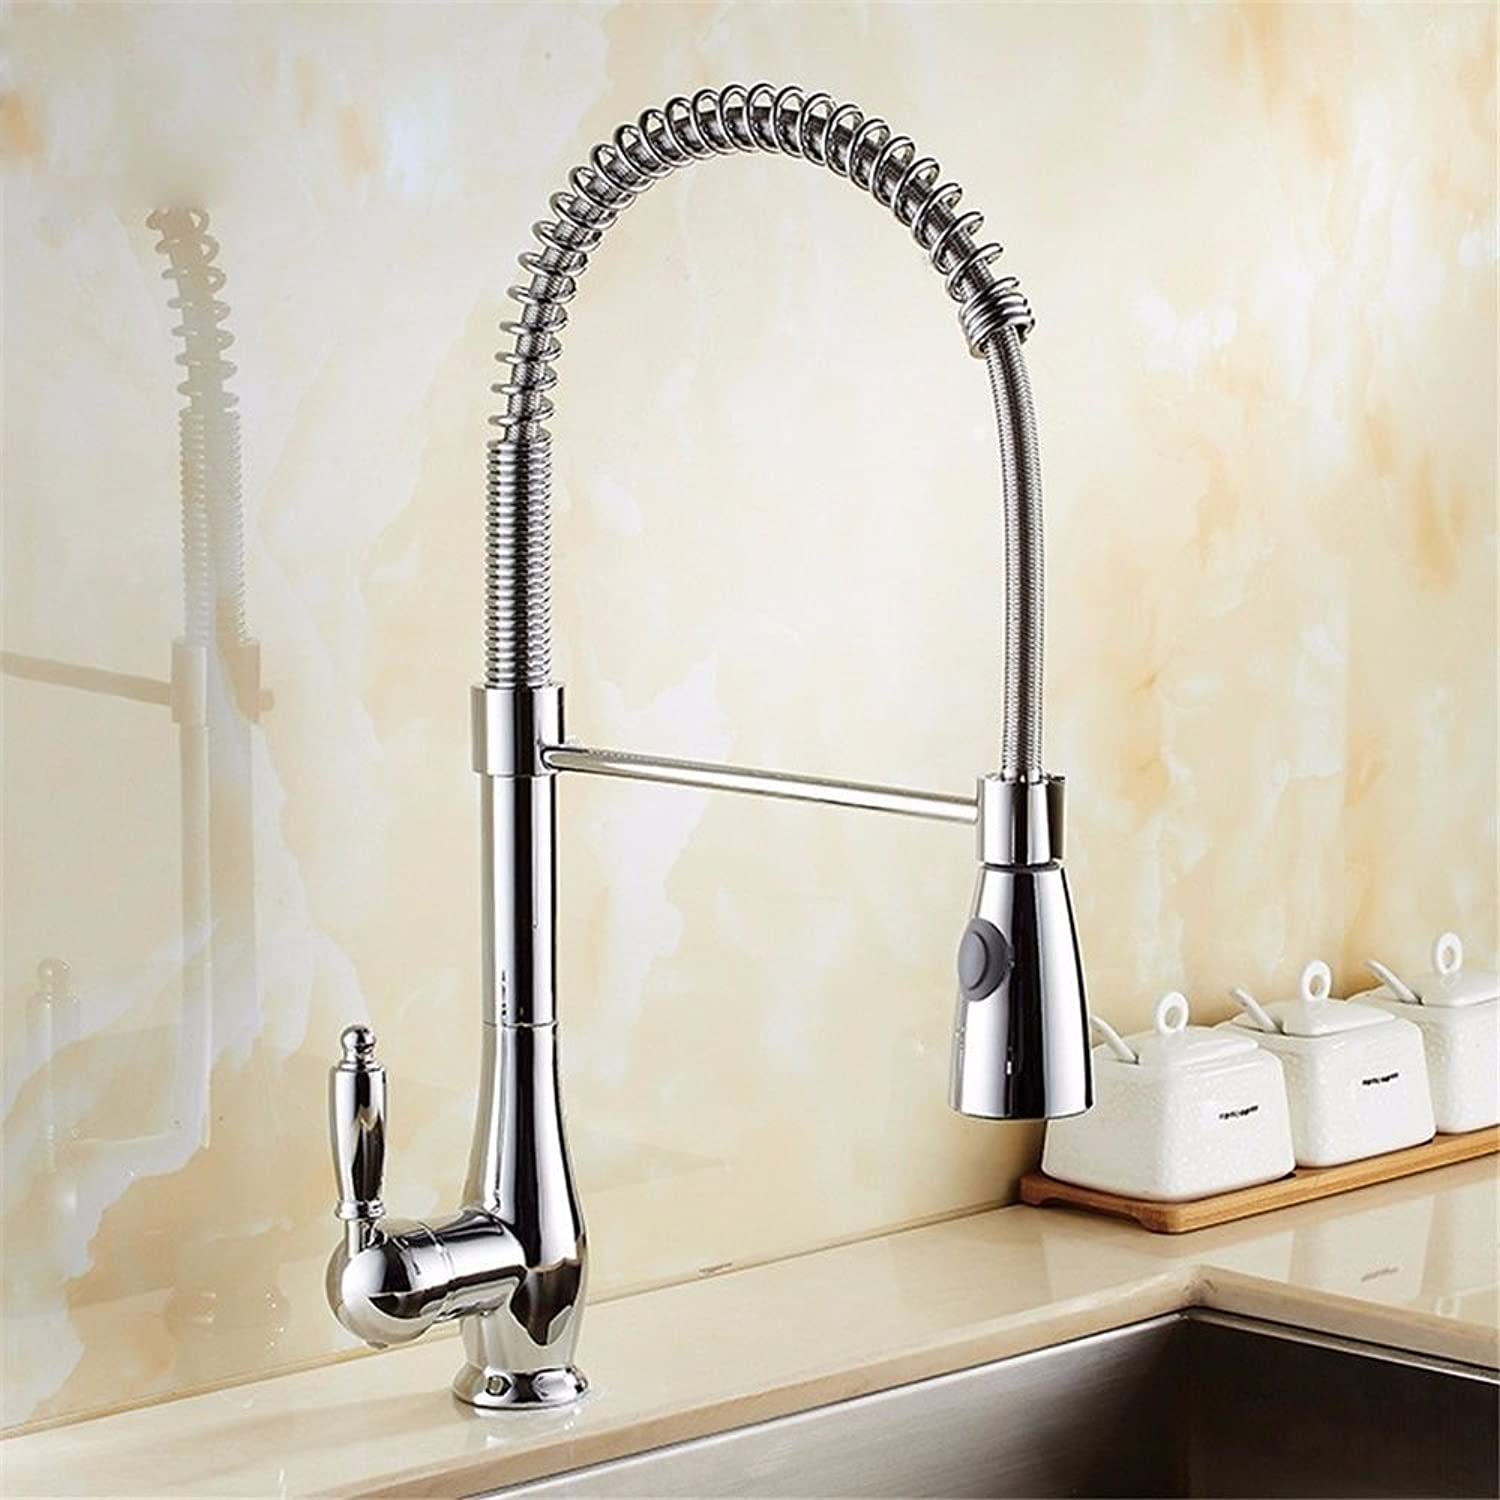 AQMMi Basin Sink Mixer Tap for Lavatory Spring Pull-Out Hot and Cold Water redatable Chrome Bathroom Vanity Sink Faucet